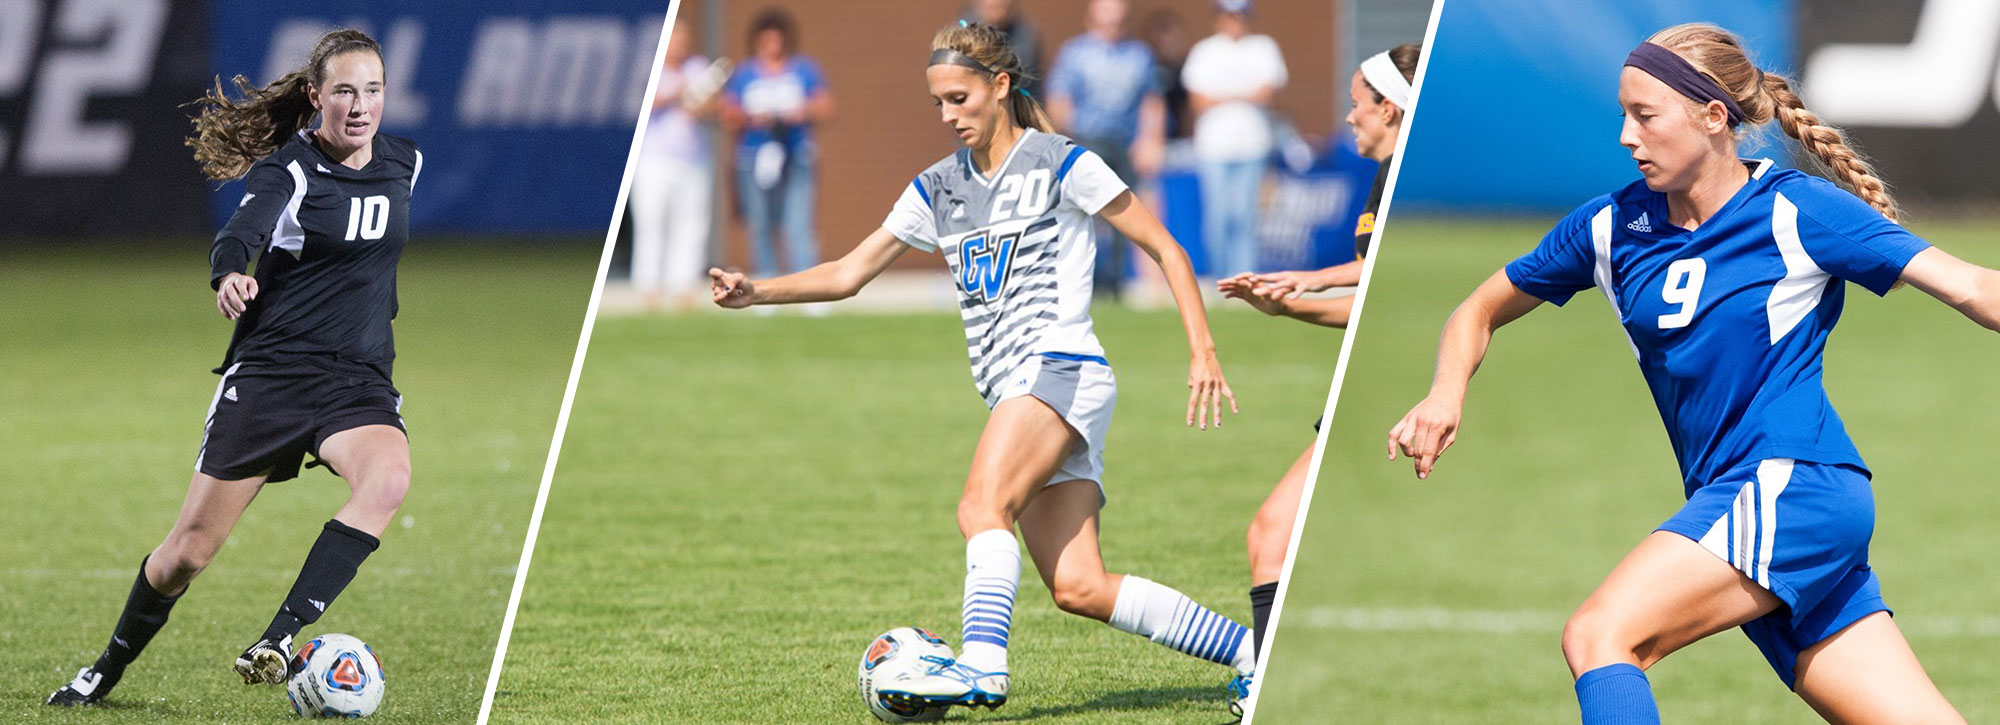 GVSU's Mencotti Selected CoSIDA Academic All-American of the Year; Quinn & Ham Honored